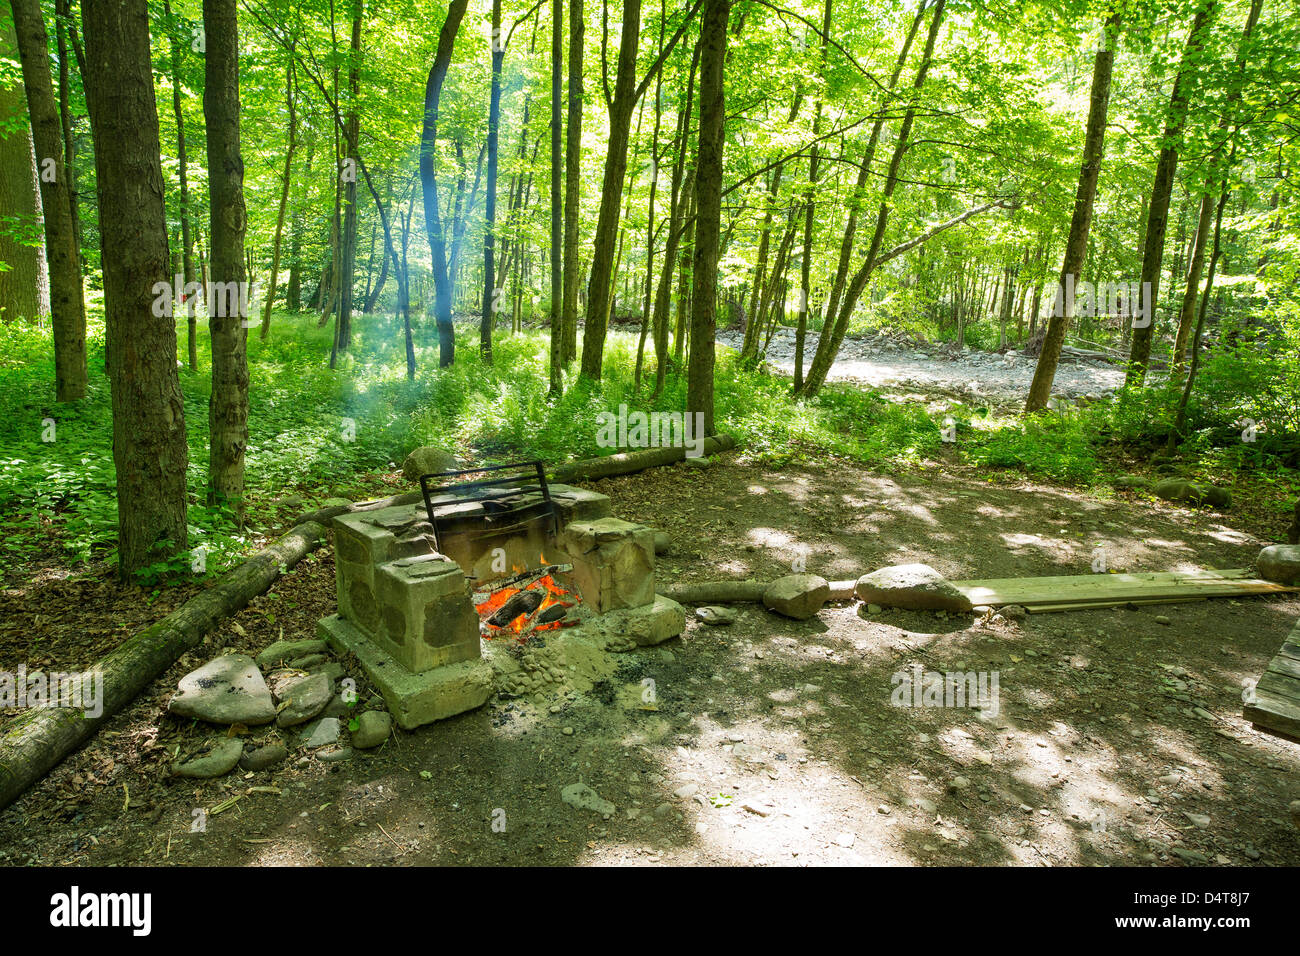 Campsite In The Woods With A Burning Firepit